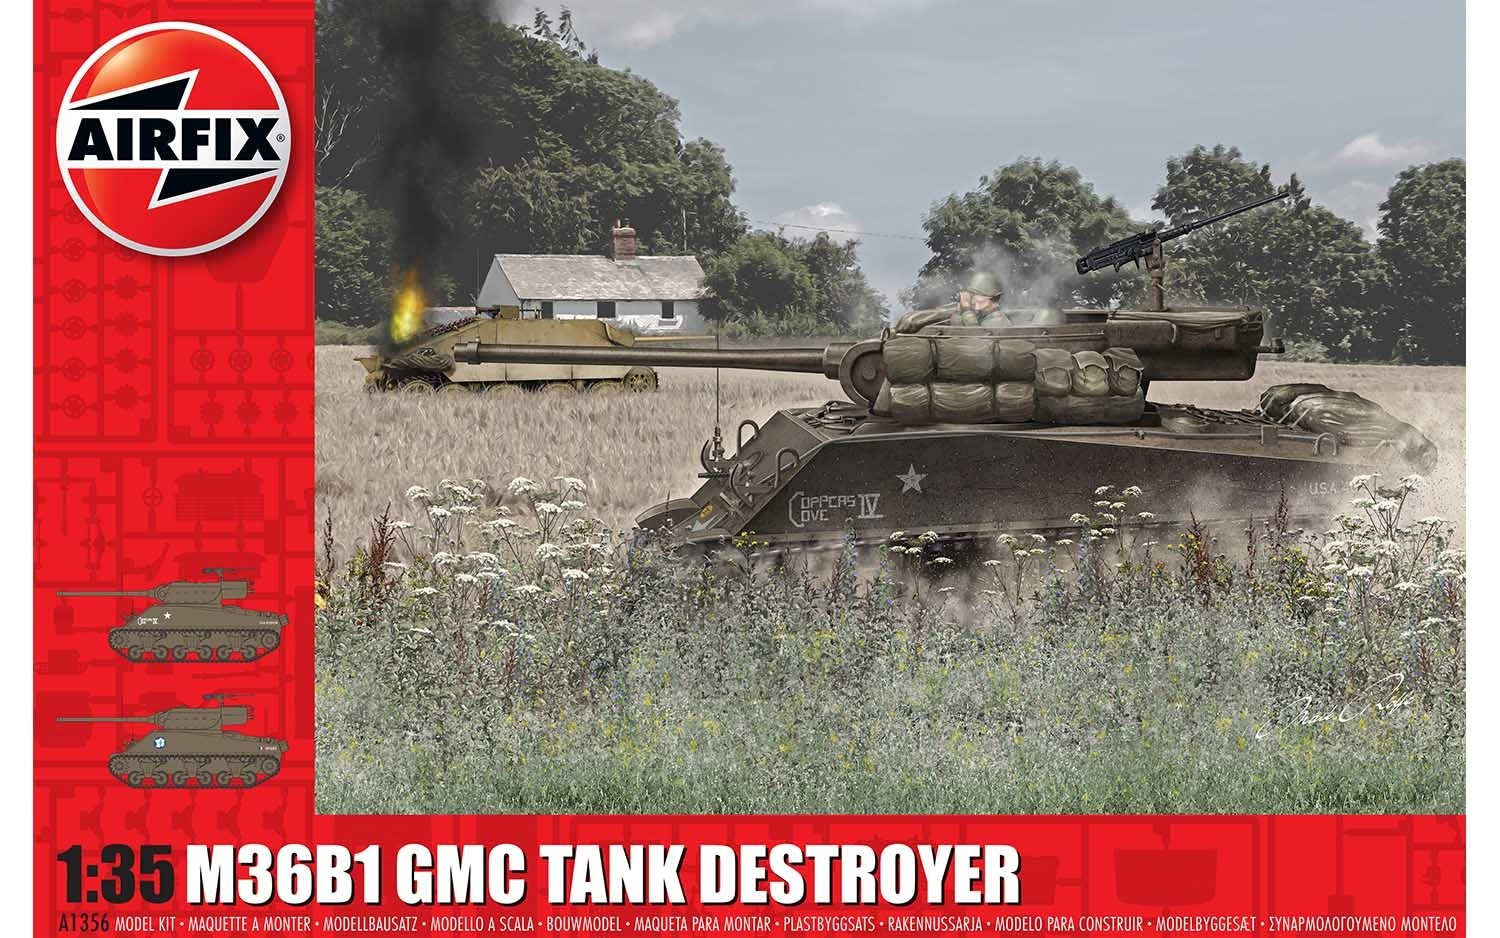 M36B1 GMC (US Army)